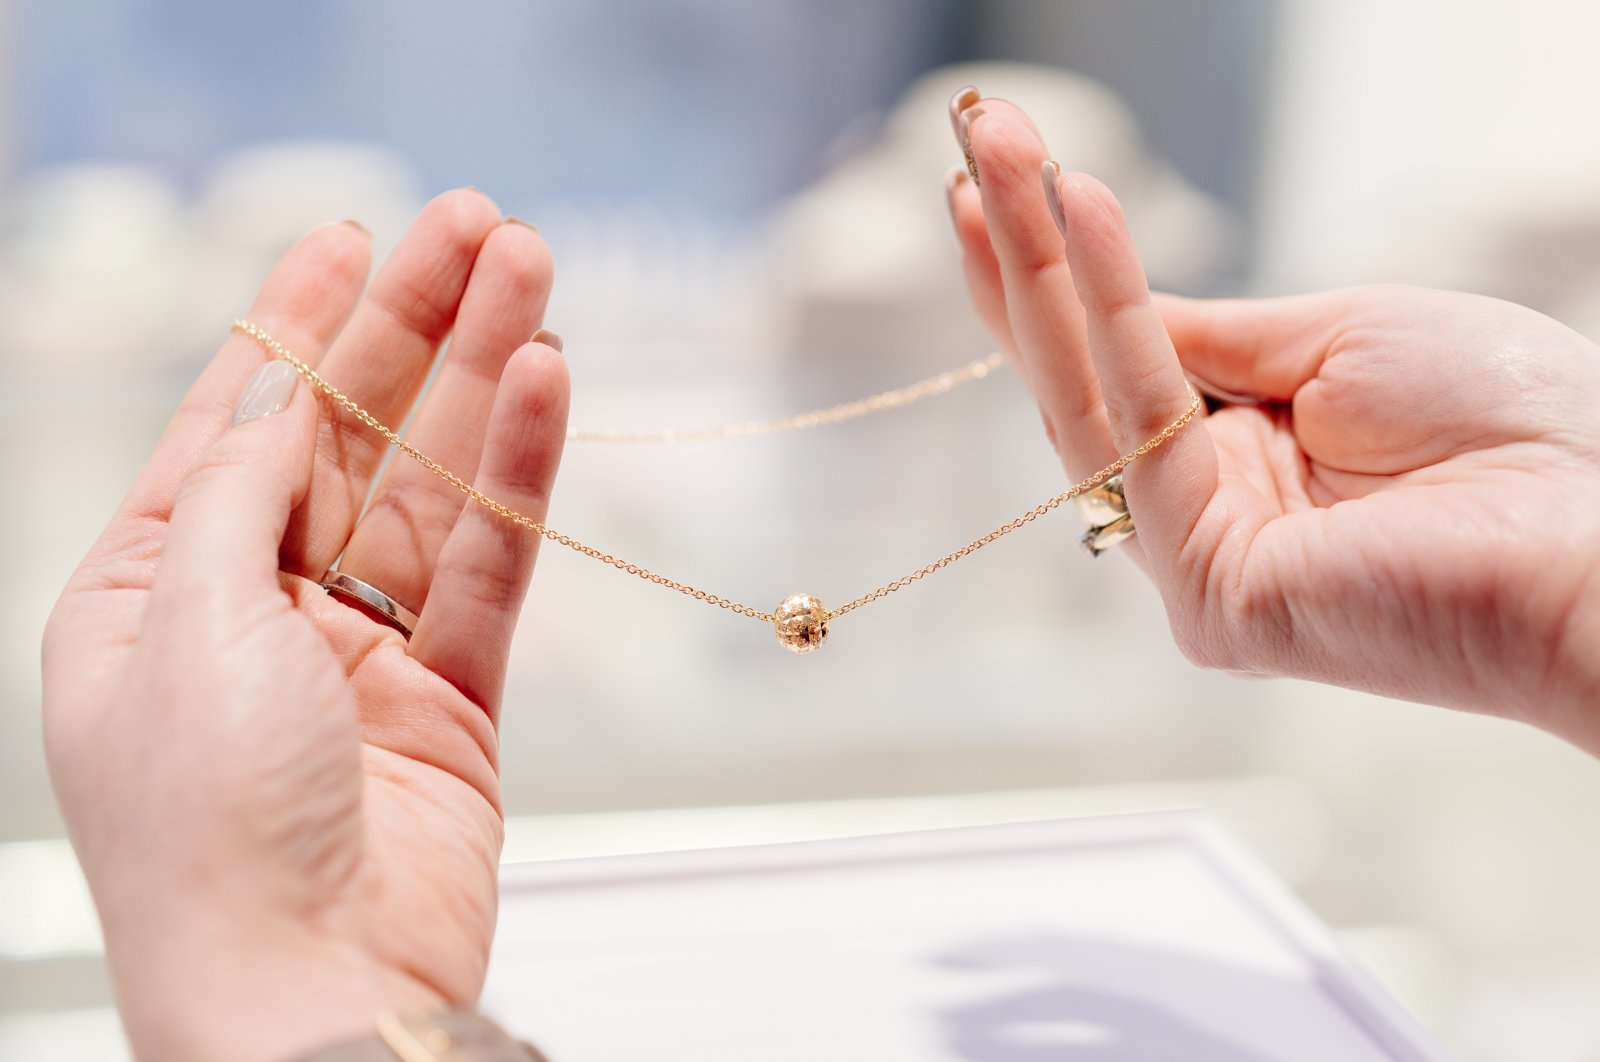 Sunshine, perfume and other things you need to protect jewelry from. (Shutterstock Photo)